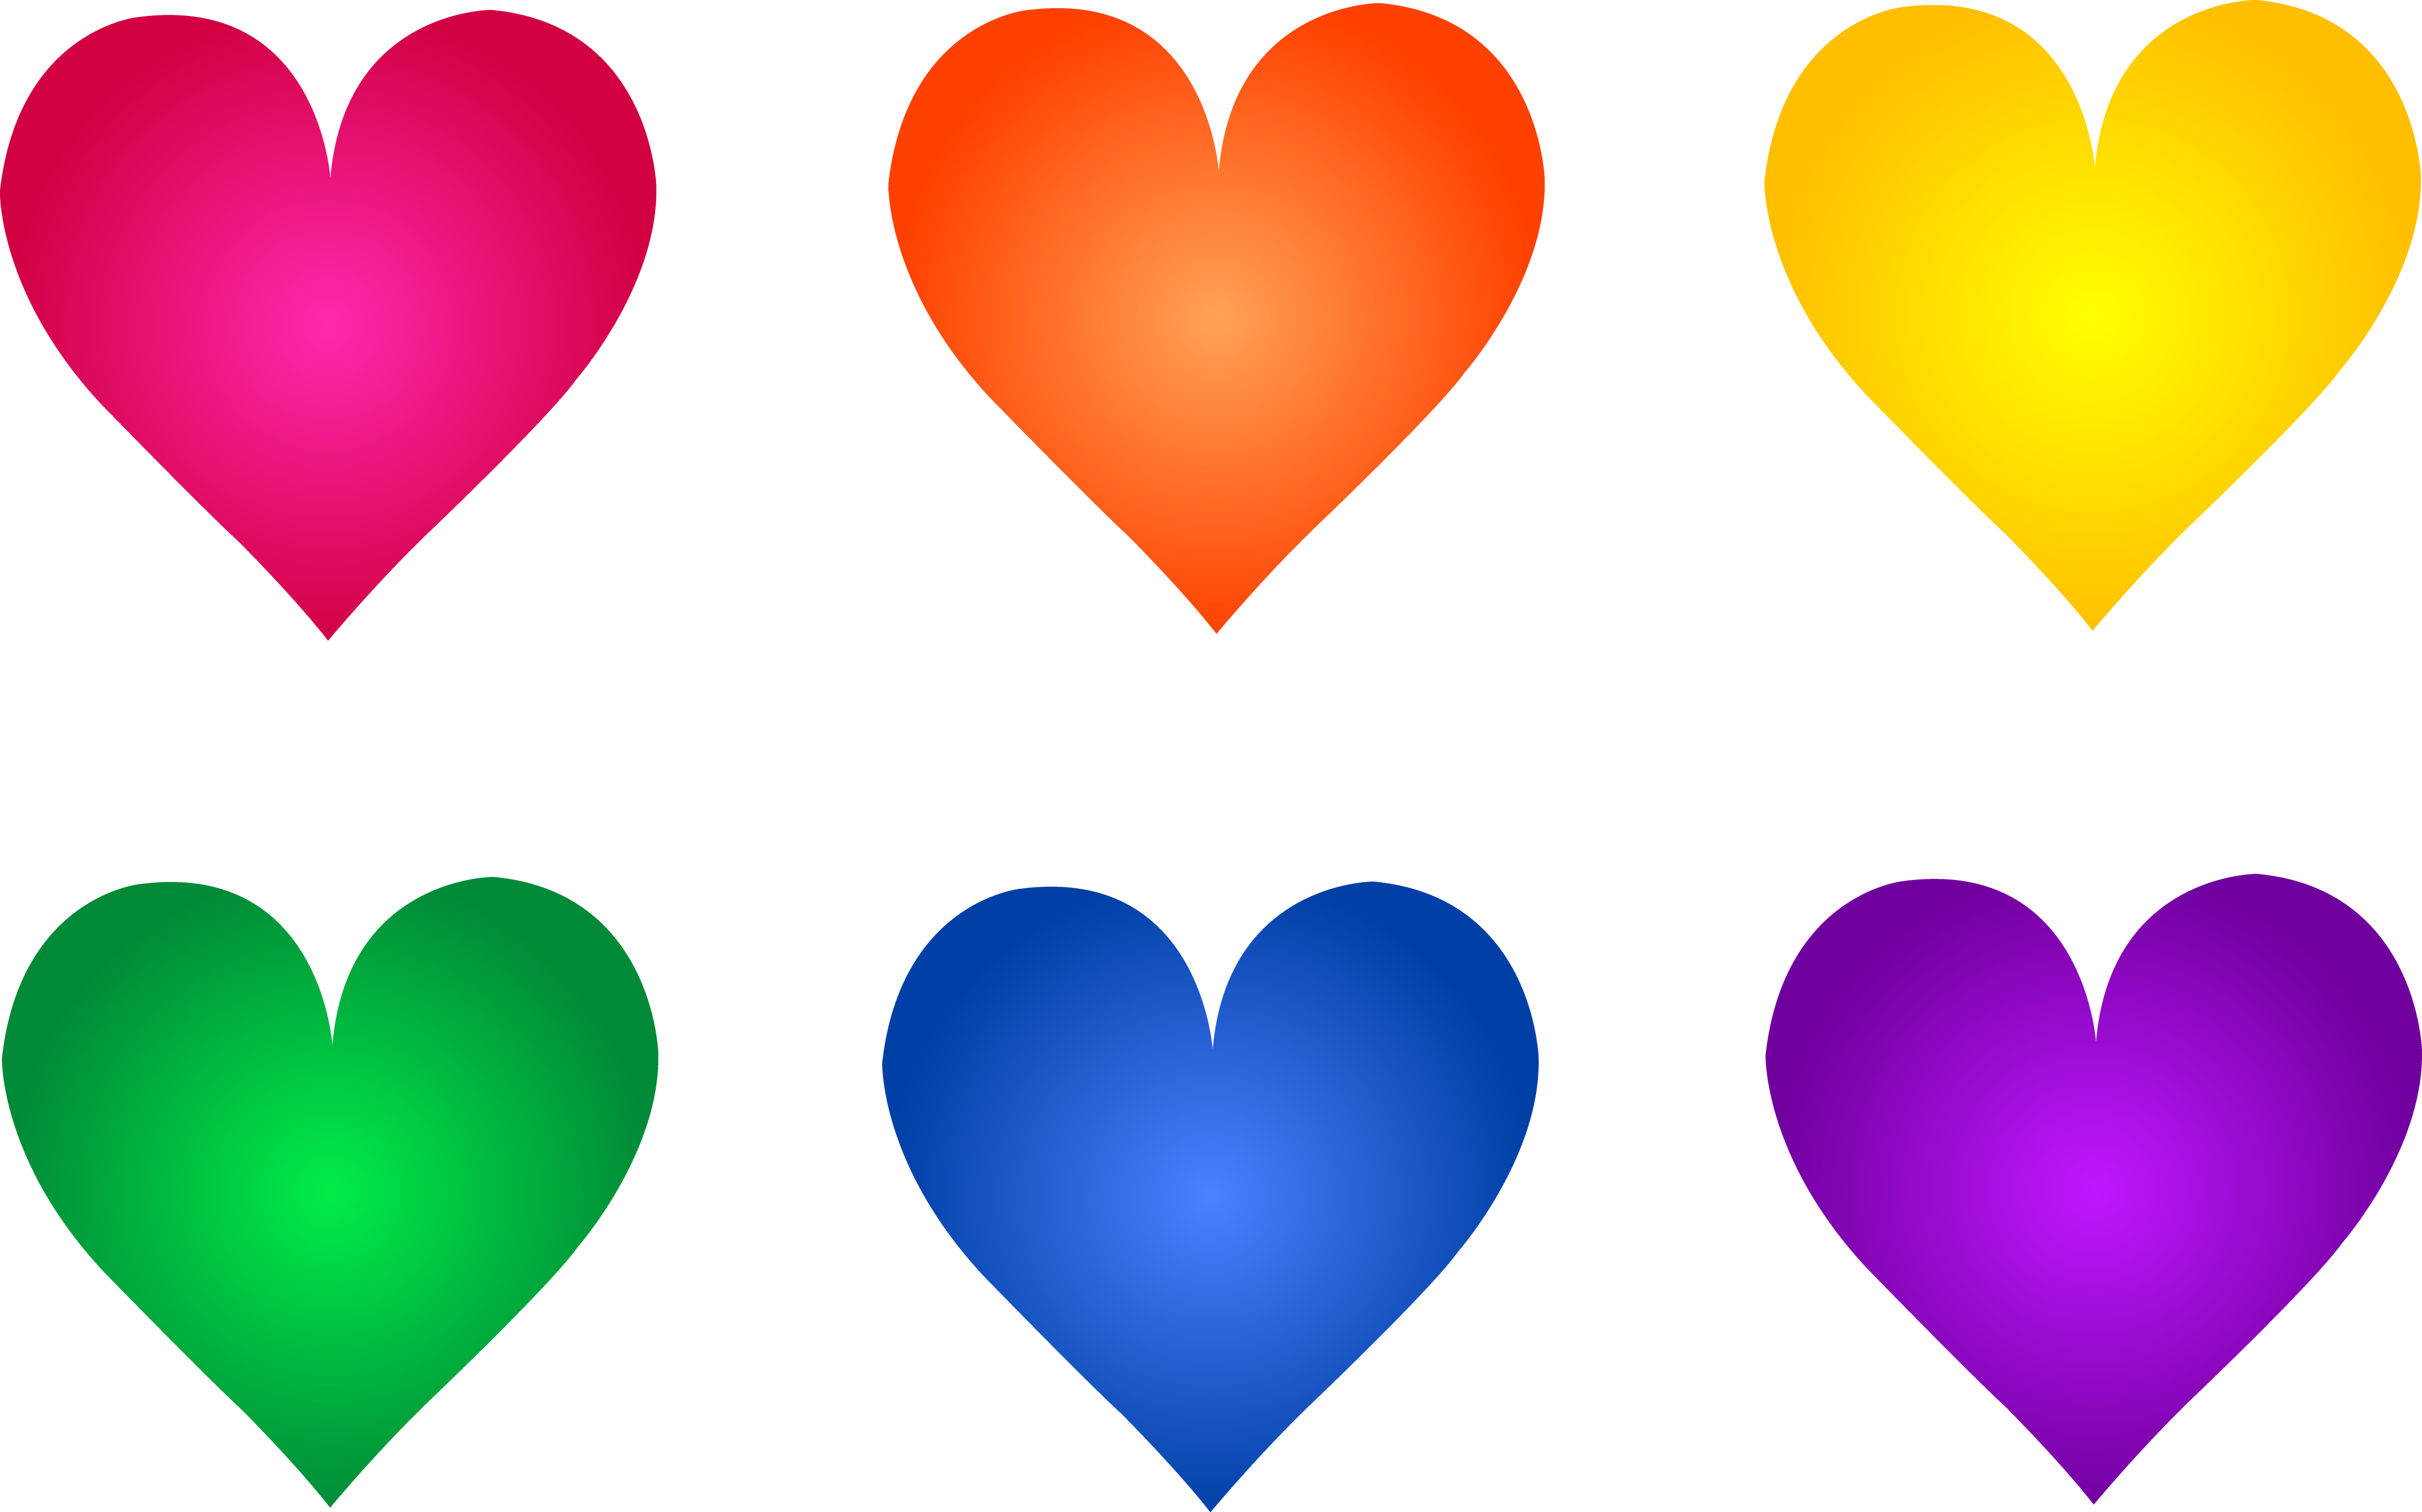 Colored crown with a heart inside clipart jpg royalty free download To The Man I'll Never Stop Loving | Pinterest | Heart images ... jpg royalty free download